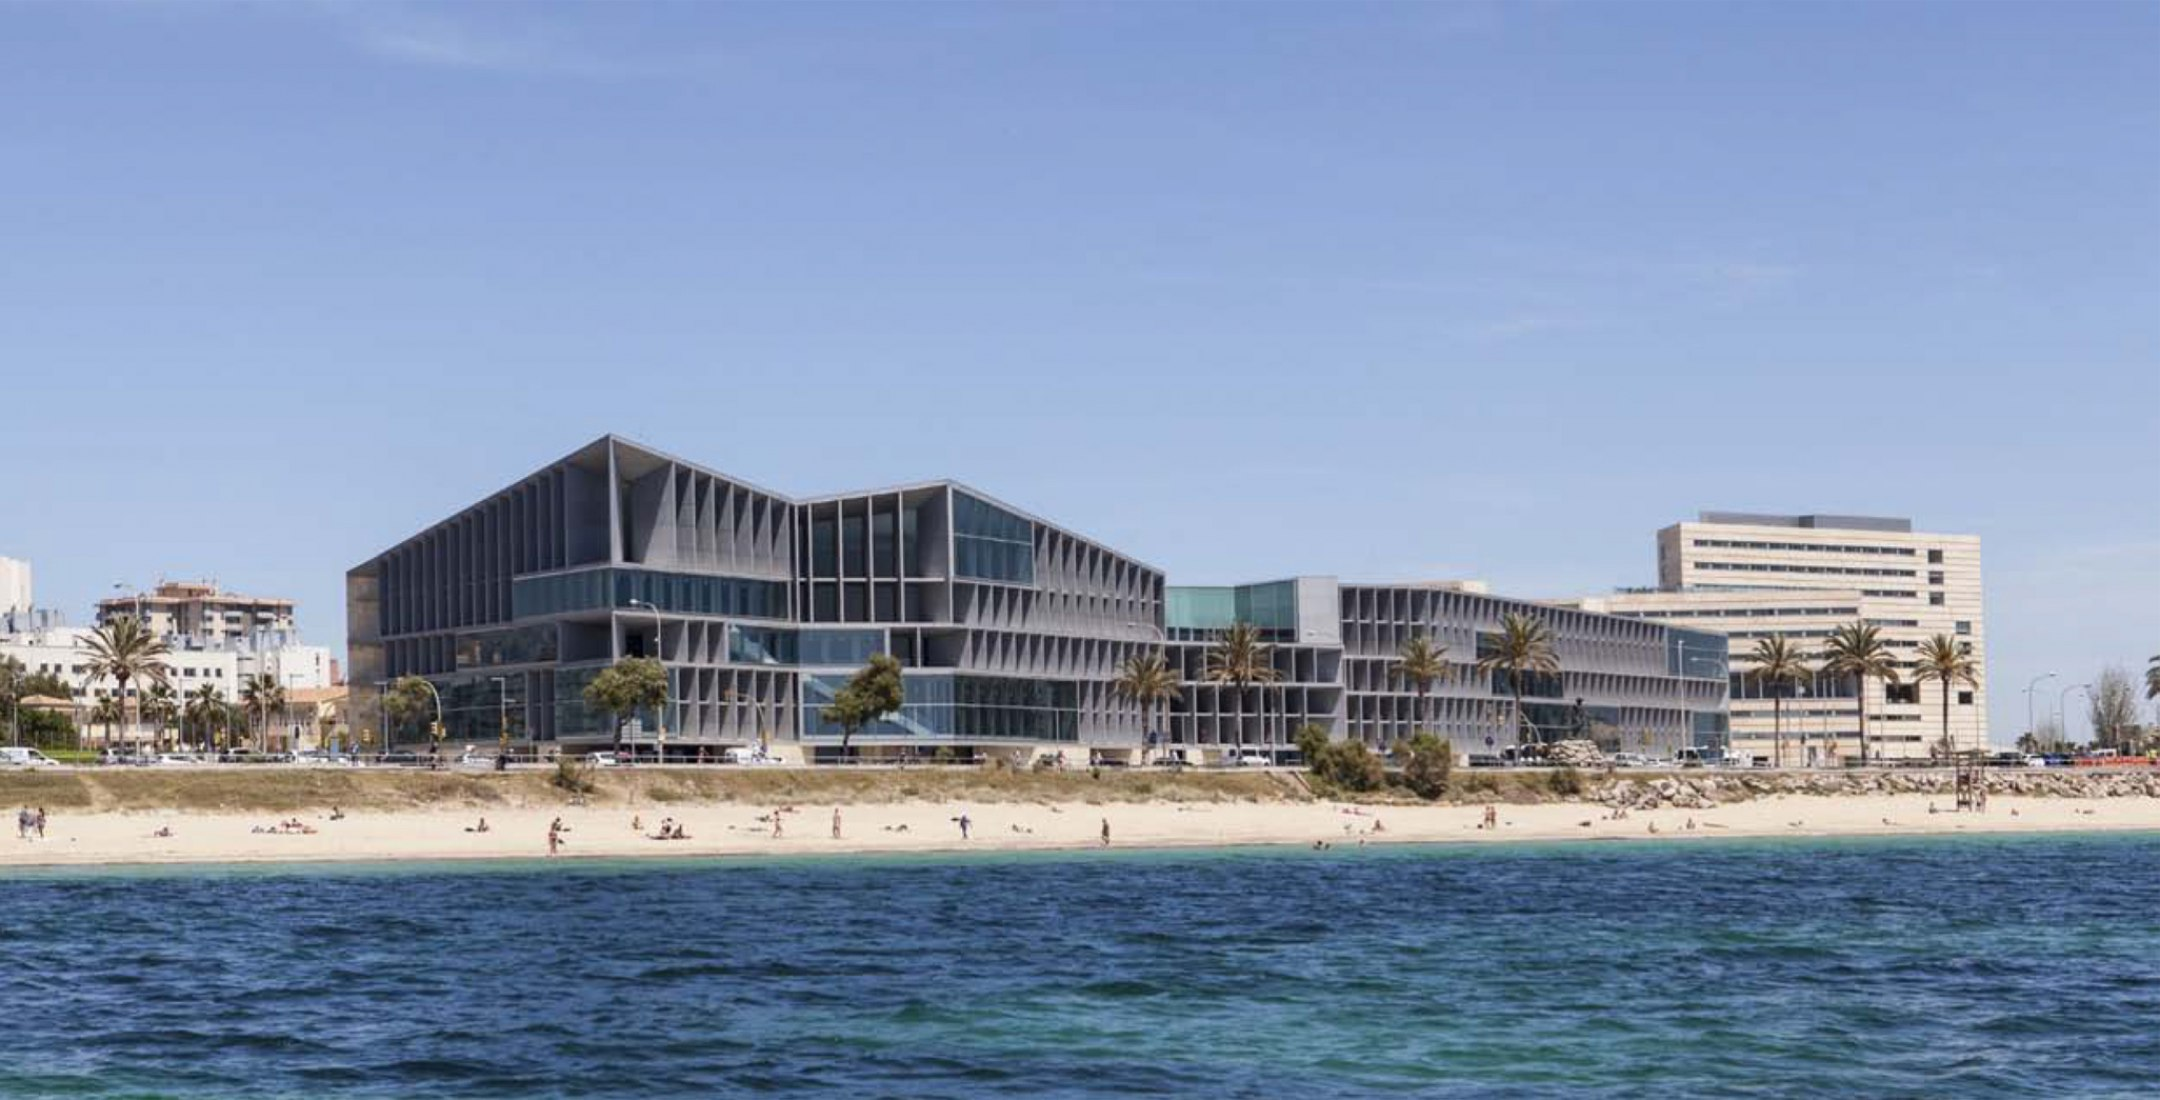 Palace of Congresses and Hotel. Palma de Mallorca. Authors: Francisco Mangado - Mangado y Asociados. Presented by the Official School of Architects Vasco Navarro. Photography by Juan Rodríguez. Image courtesy of CSCAE.